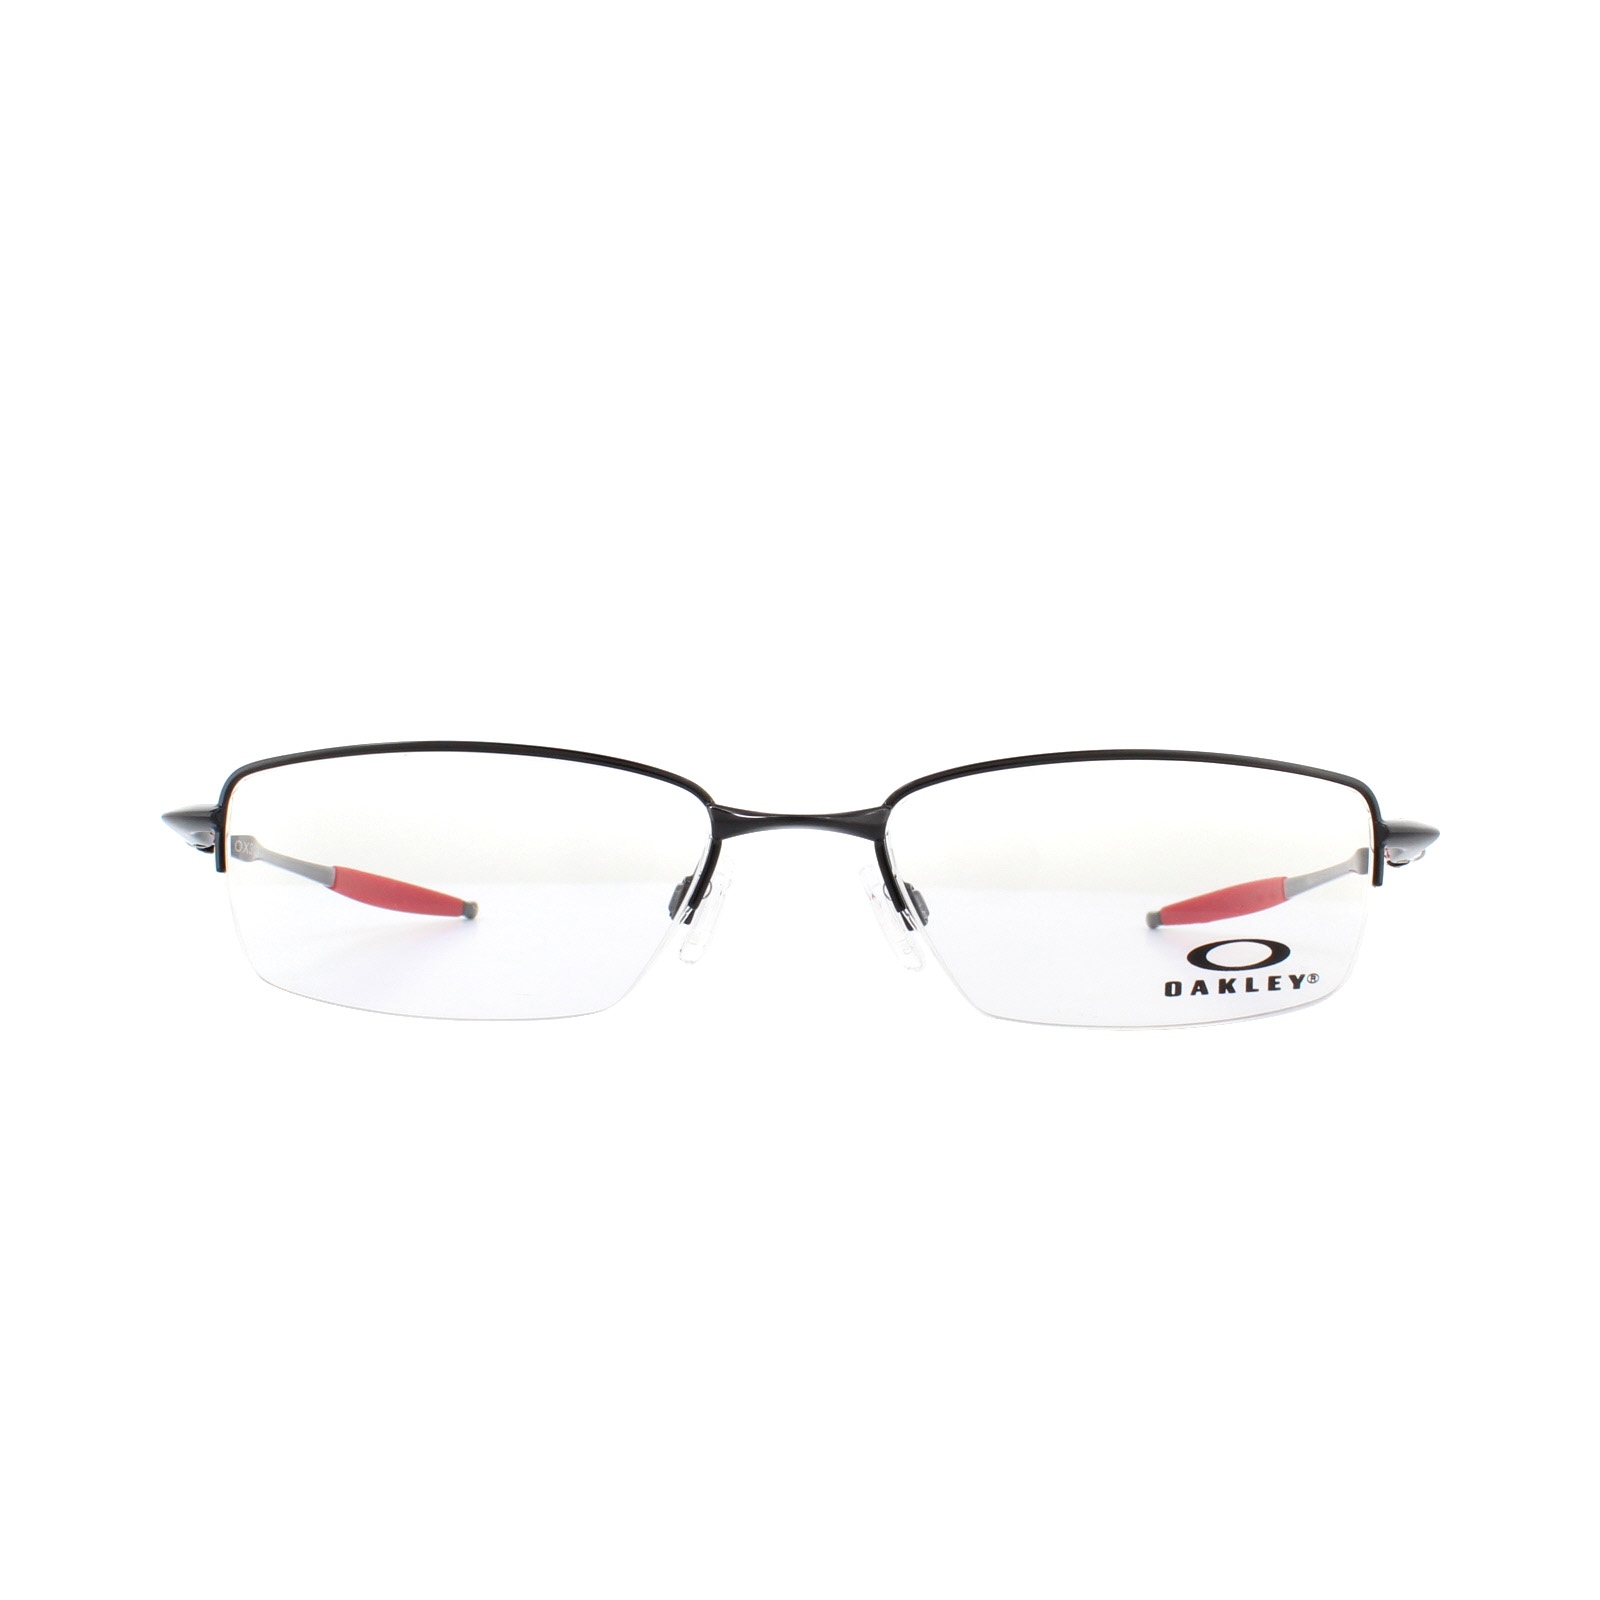 4b1586b5aa Sentinel Oakley Glasses Frames Coverdrive OX3129-07 Polished Black and Red  53mm